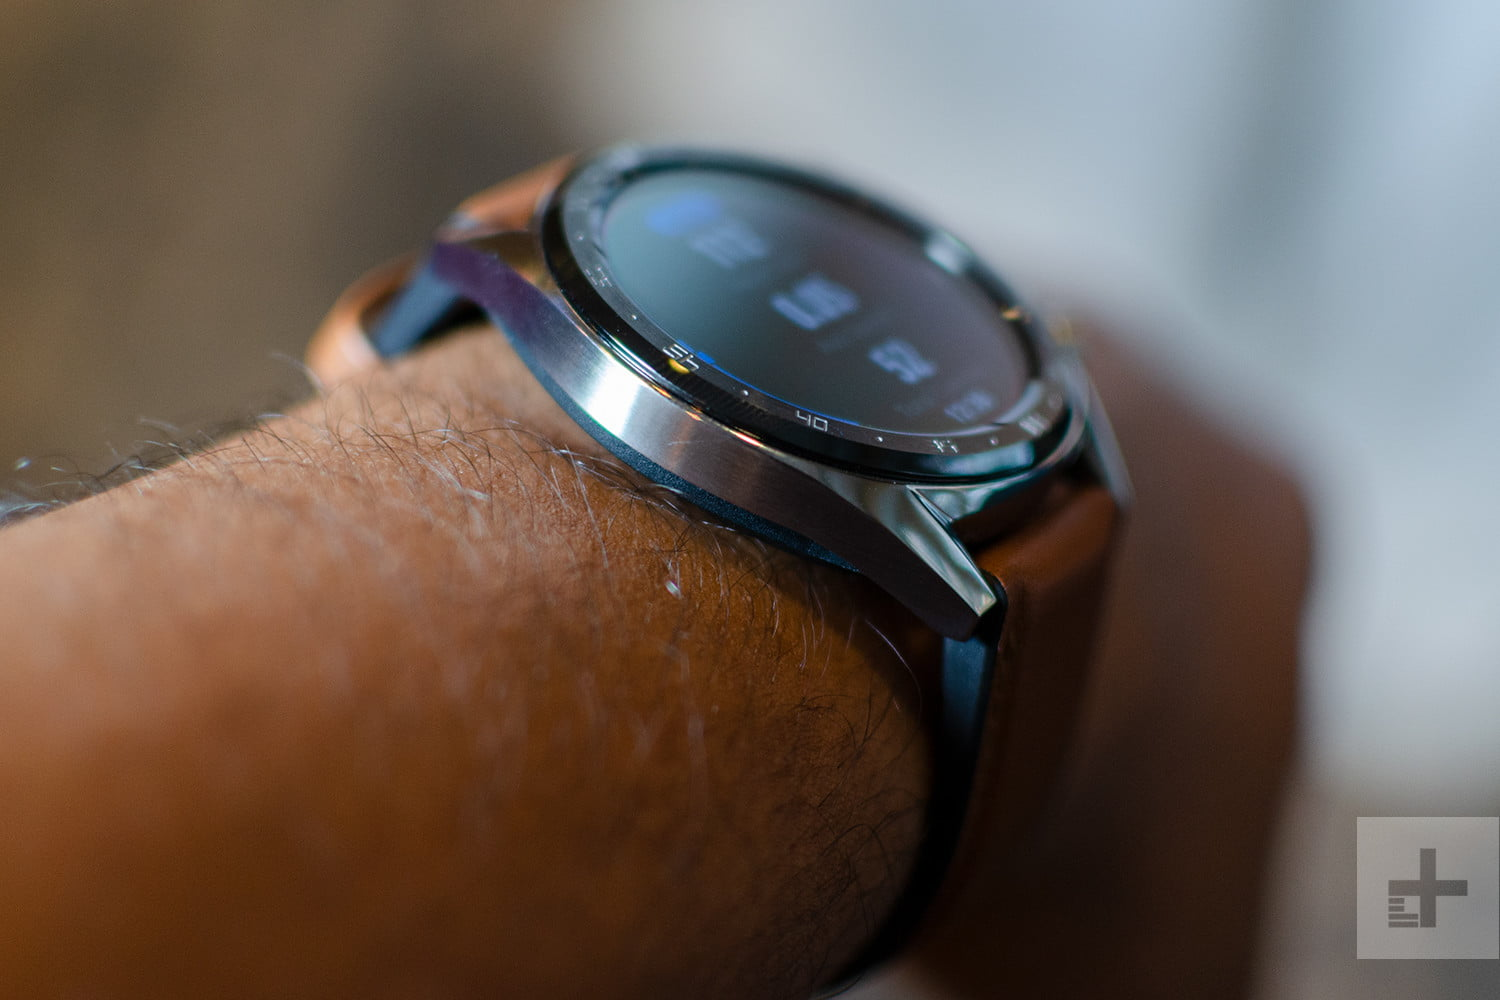 Huawei Watch Gt Hands On Review Digital Trends Smart Black Stainless Steel The Case Which Comes In Or Dlc Diamond Level Coating Is Only 106mm Thick So It Feels Like A Traditional